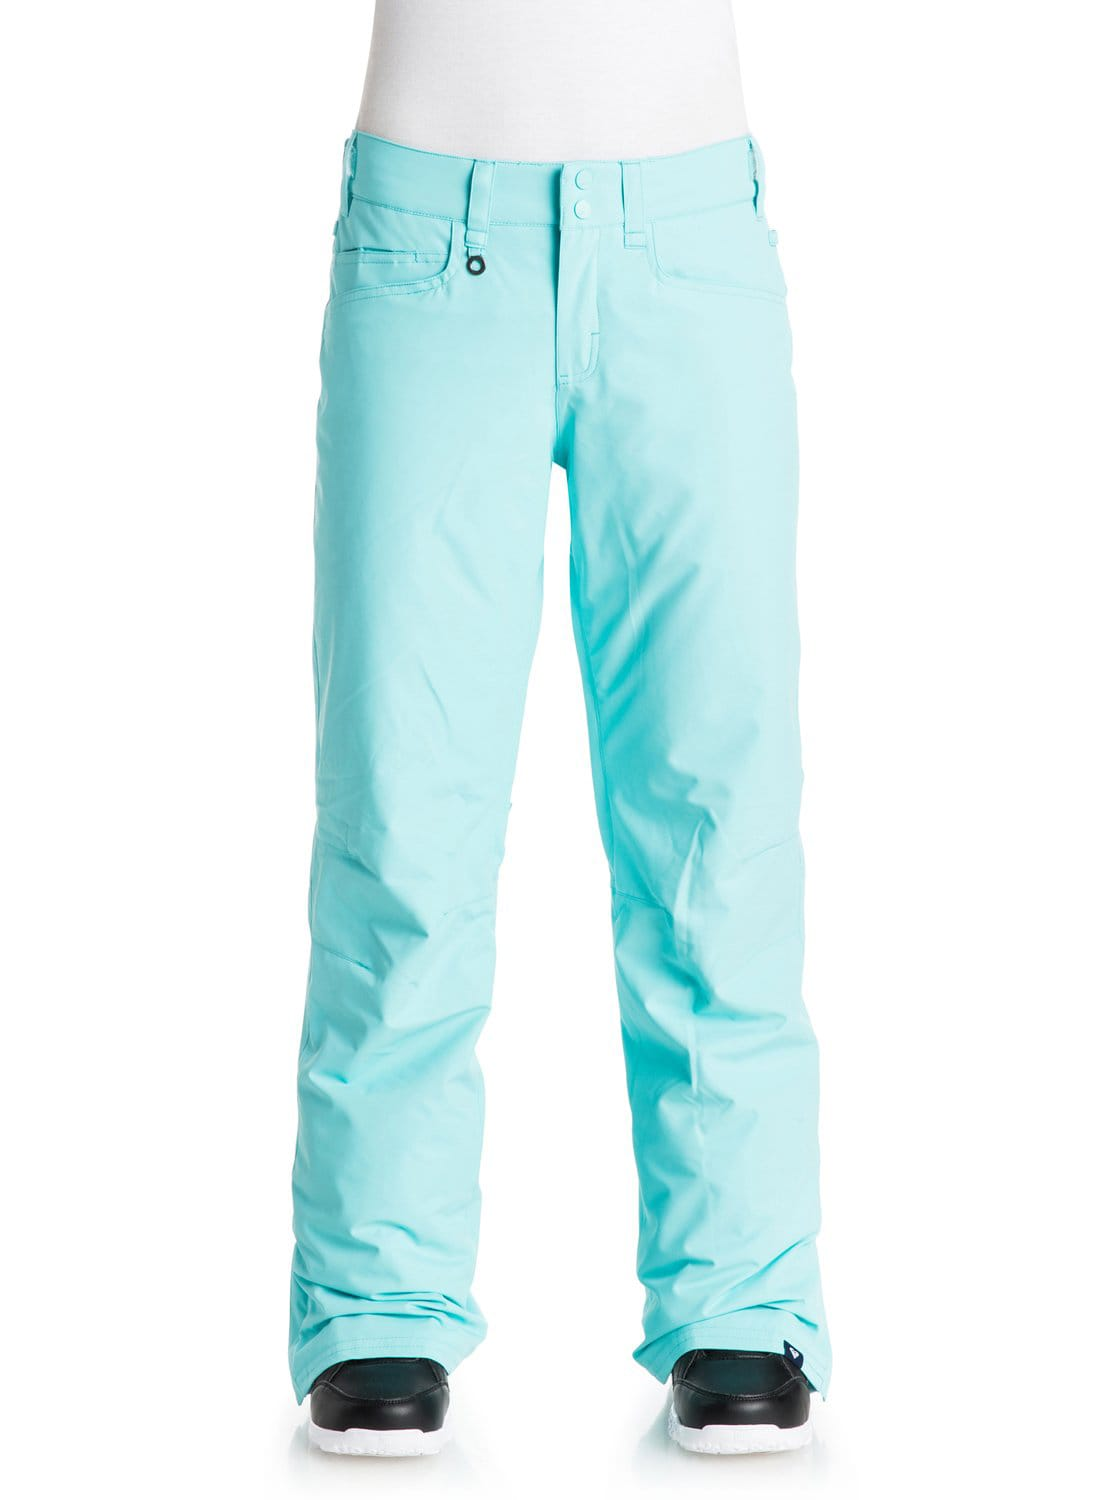 Choose women's snow pants and bibs lined with rich, soft fabric-like fleece or synthetic insulators. The latest ski and snow pants for women are cut for a clean, .